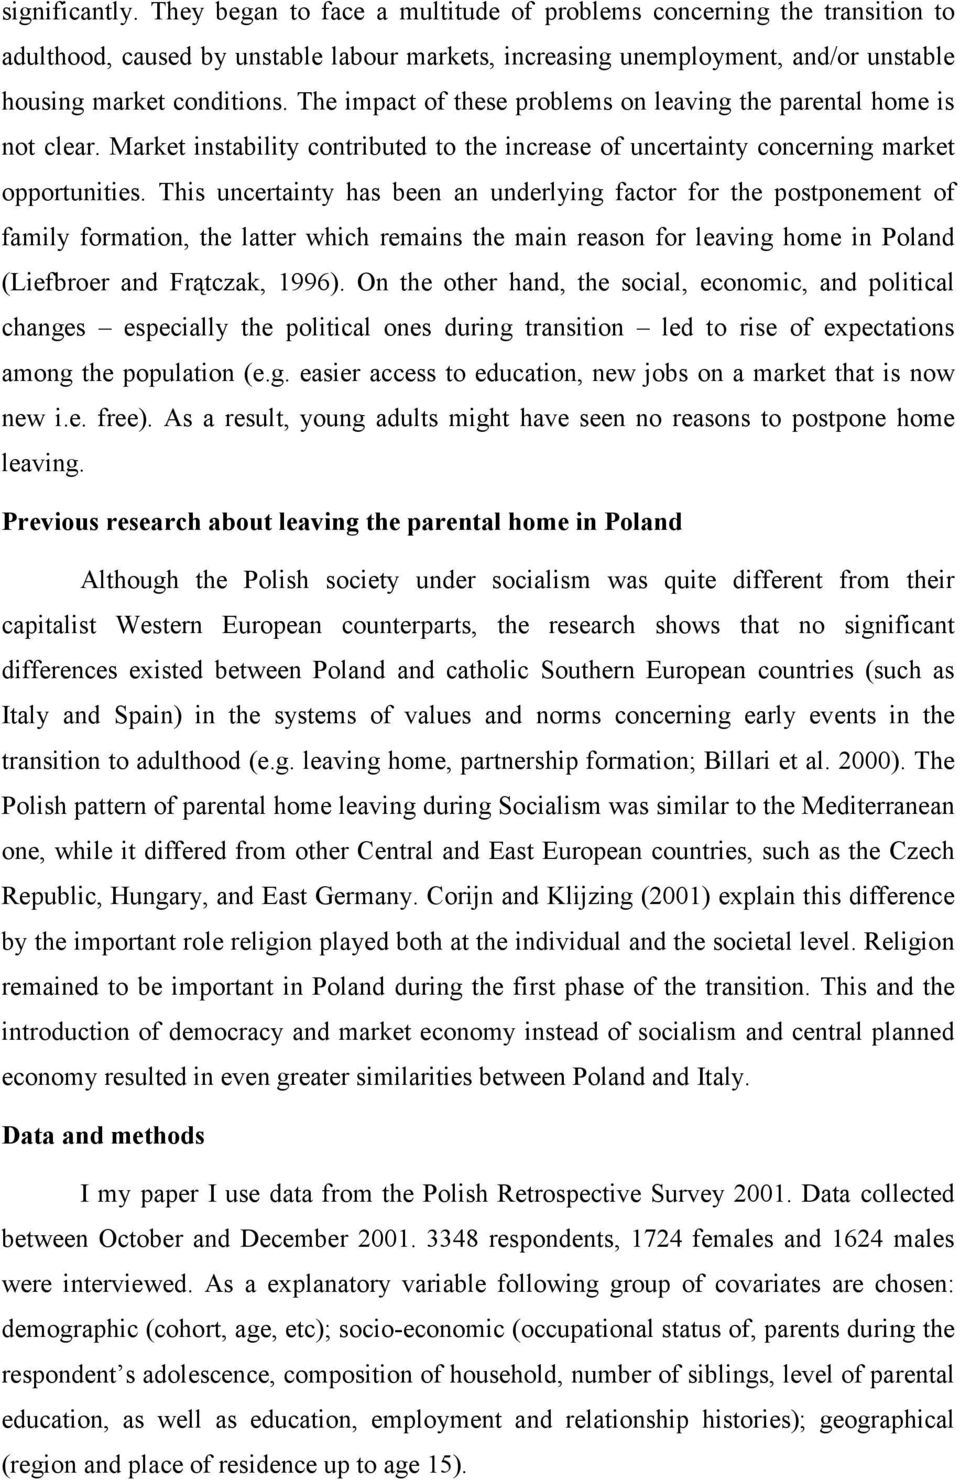 This uncertainty has been an underlying factor for the postponement of family formation, the latter which remains the main reason for leaving home in Poland (Liefbroer and Frątczak, 1996).